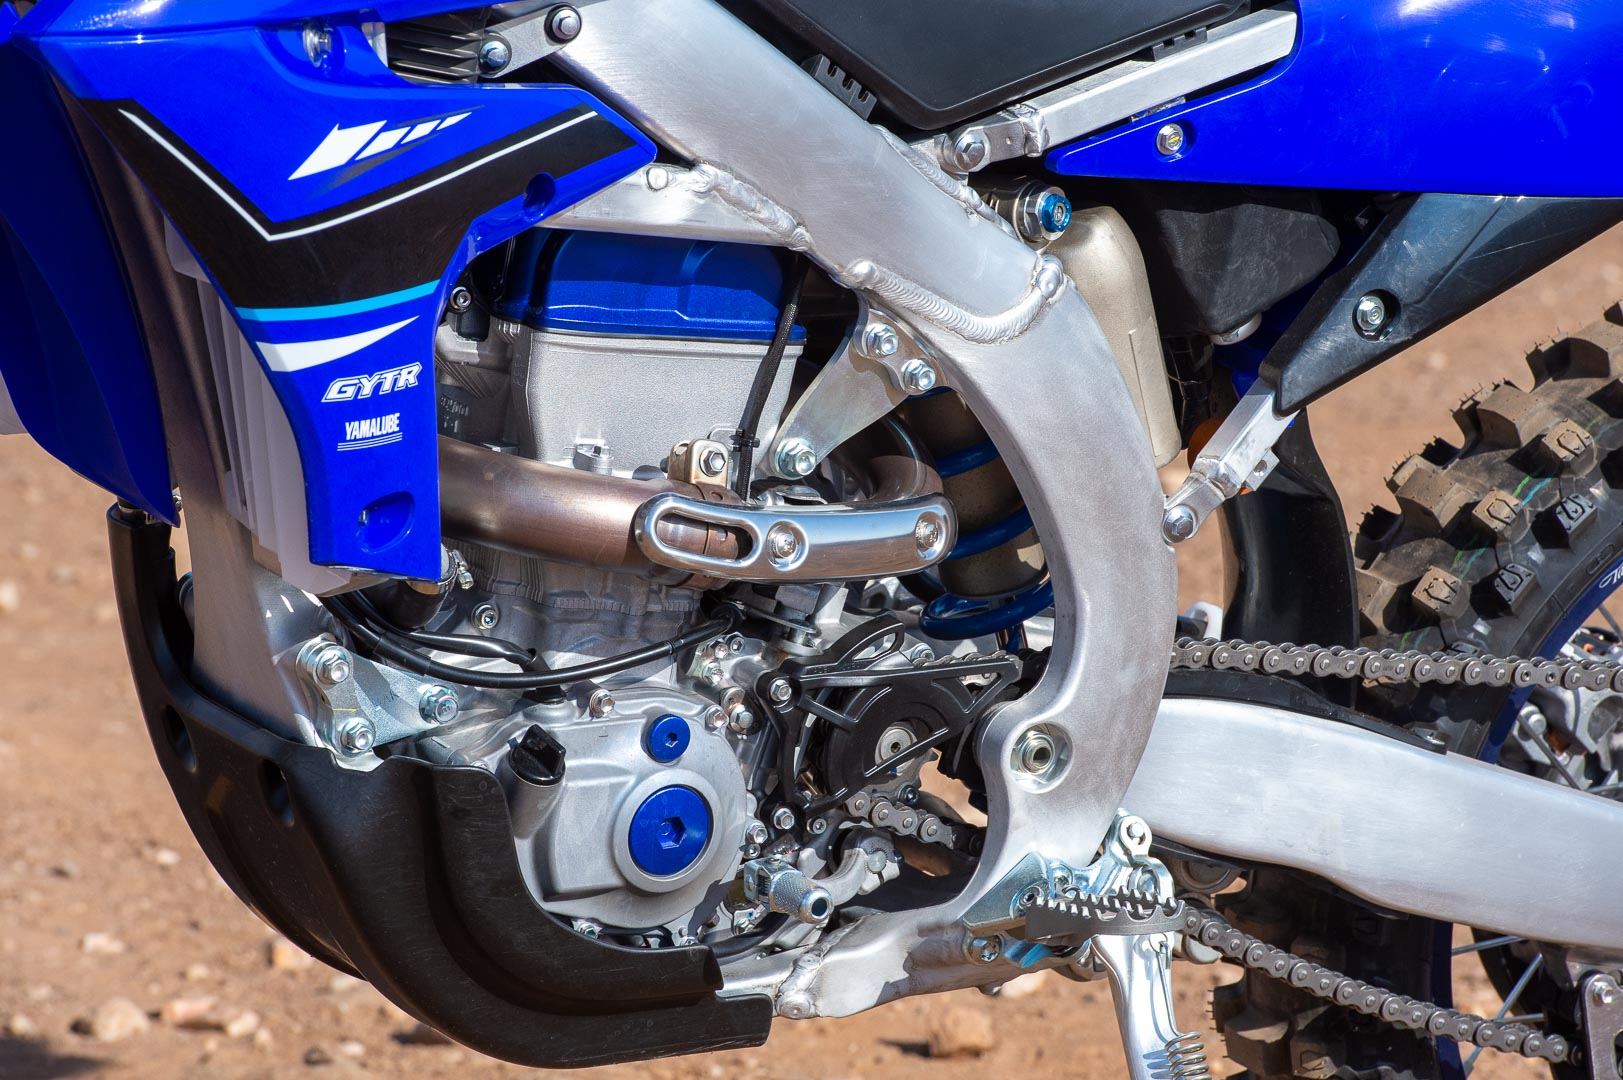 2021 Yamaha WR450F Review: Price